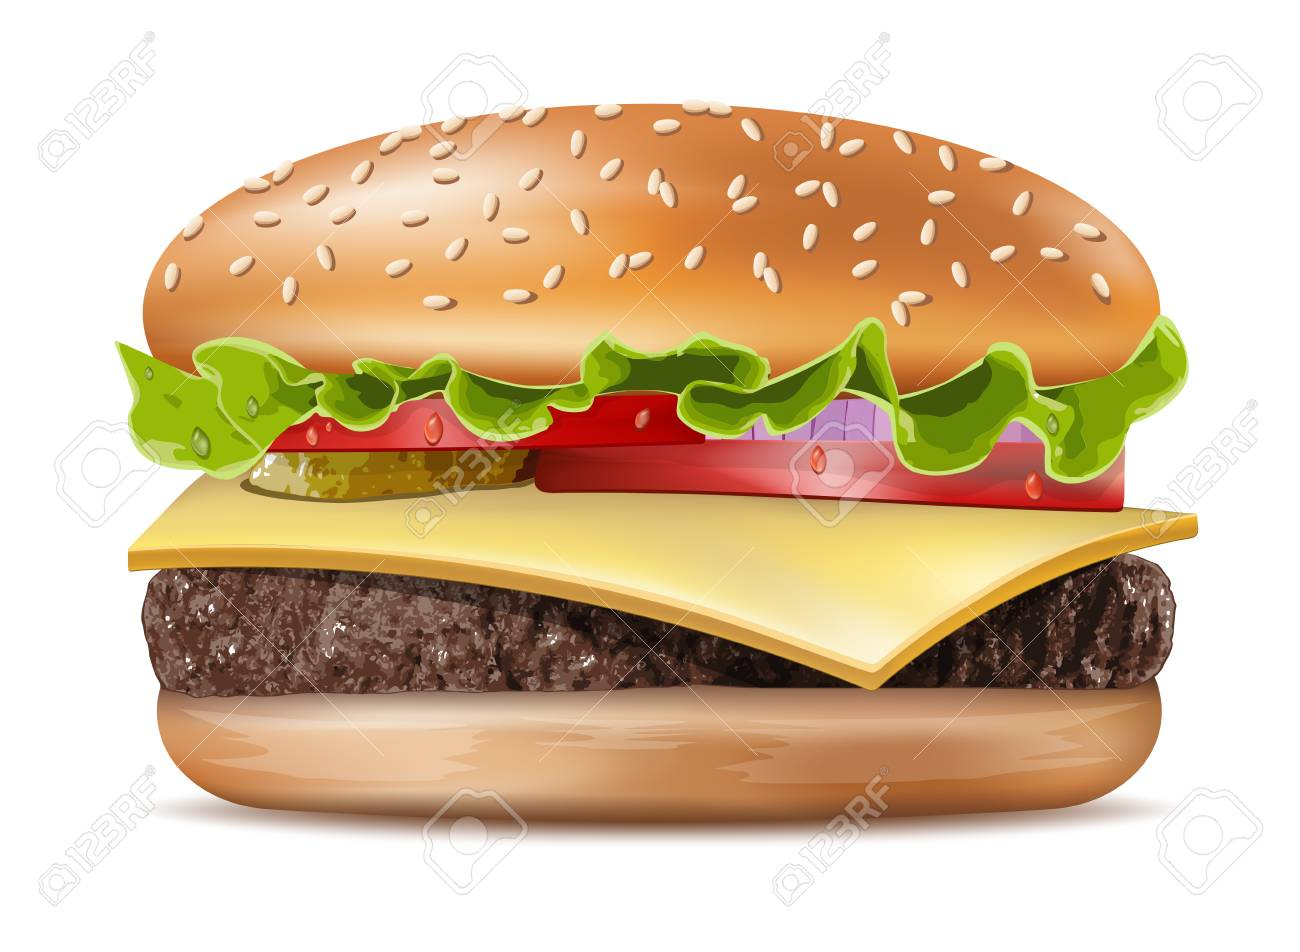 Vector Realistic Hamburger Classic Burger American Cheeseburger with Lettuce Tomato Onion Cheese Beef and Sauce Close up isolated on white Background. Fast Food - 91544095